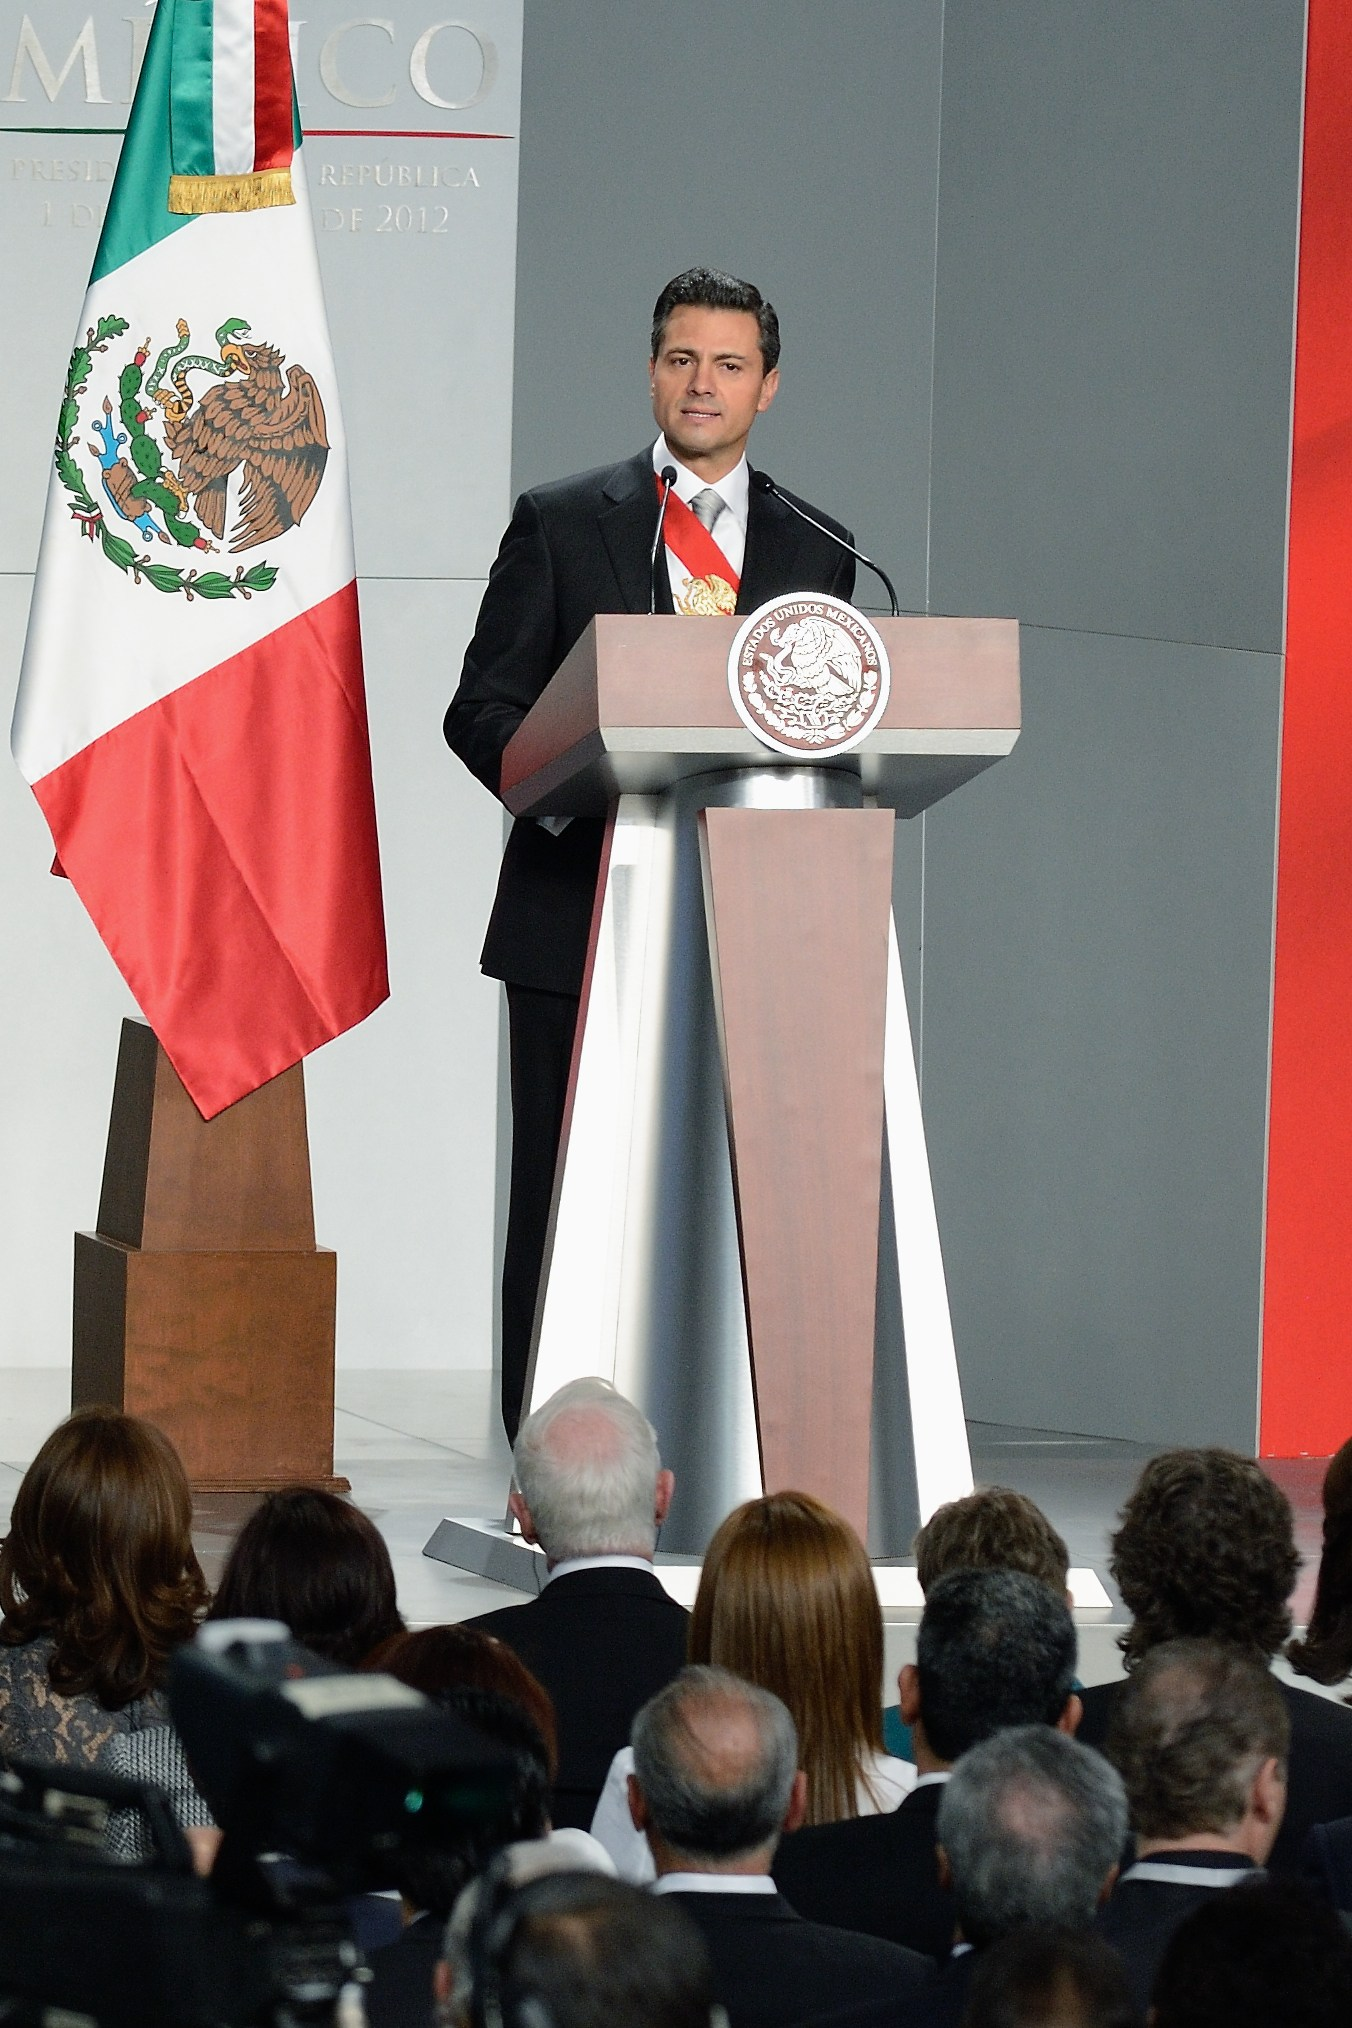 His Excellency Peña Nieto is the 57th president of the United Mexican States.